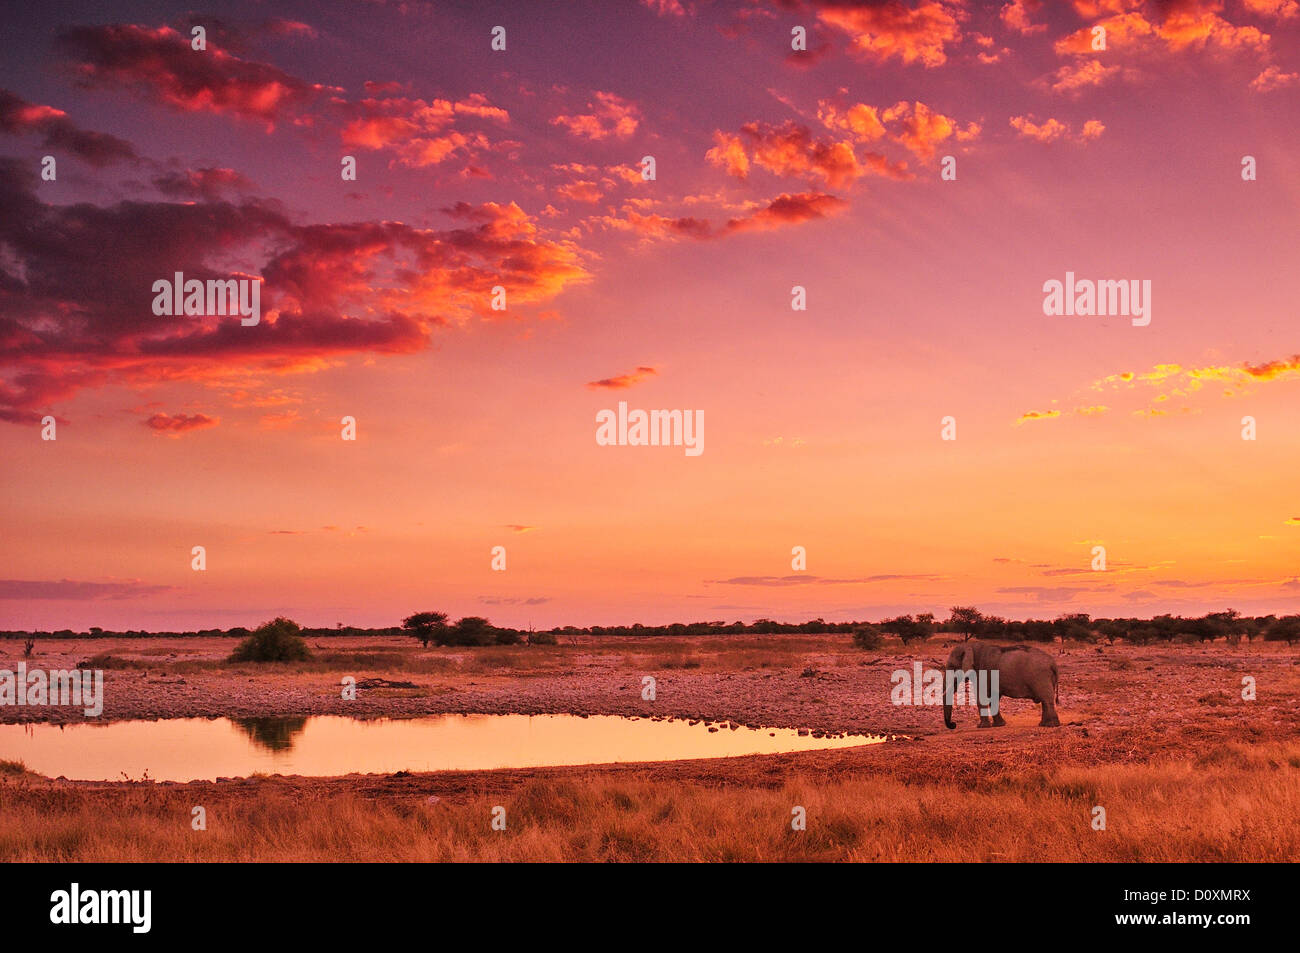 L'Afrique, la Namibie, Etosha, Parc National, coucher du soleil, l'éléphant, animal, eau, safari, Photo Stock